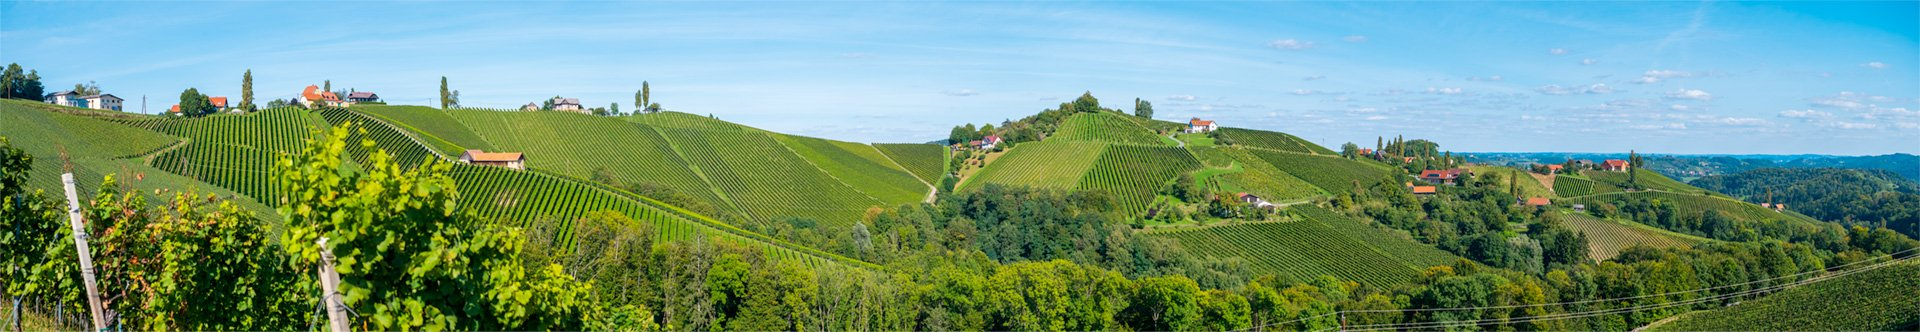 Vineyards in southern Styria, Austria in late summer